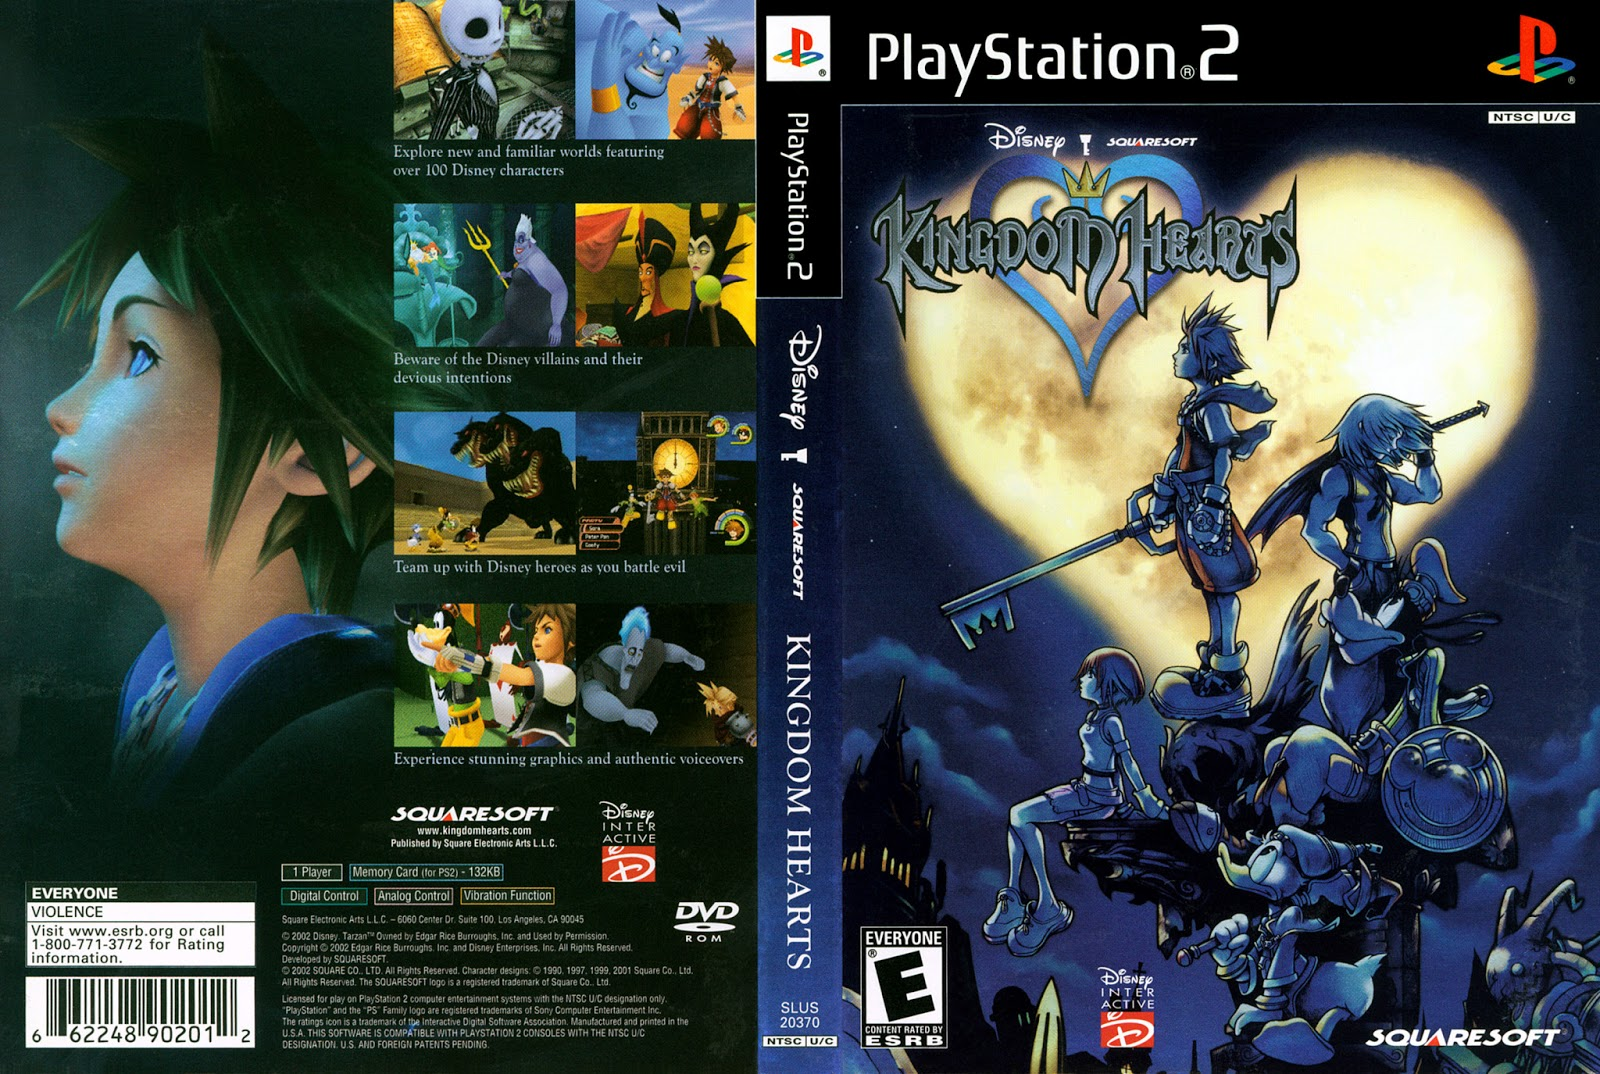 Download Game Ps2 Kingdom Hearts ISO Psx Free ~ Airlandzz.com